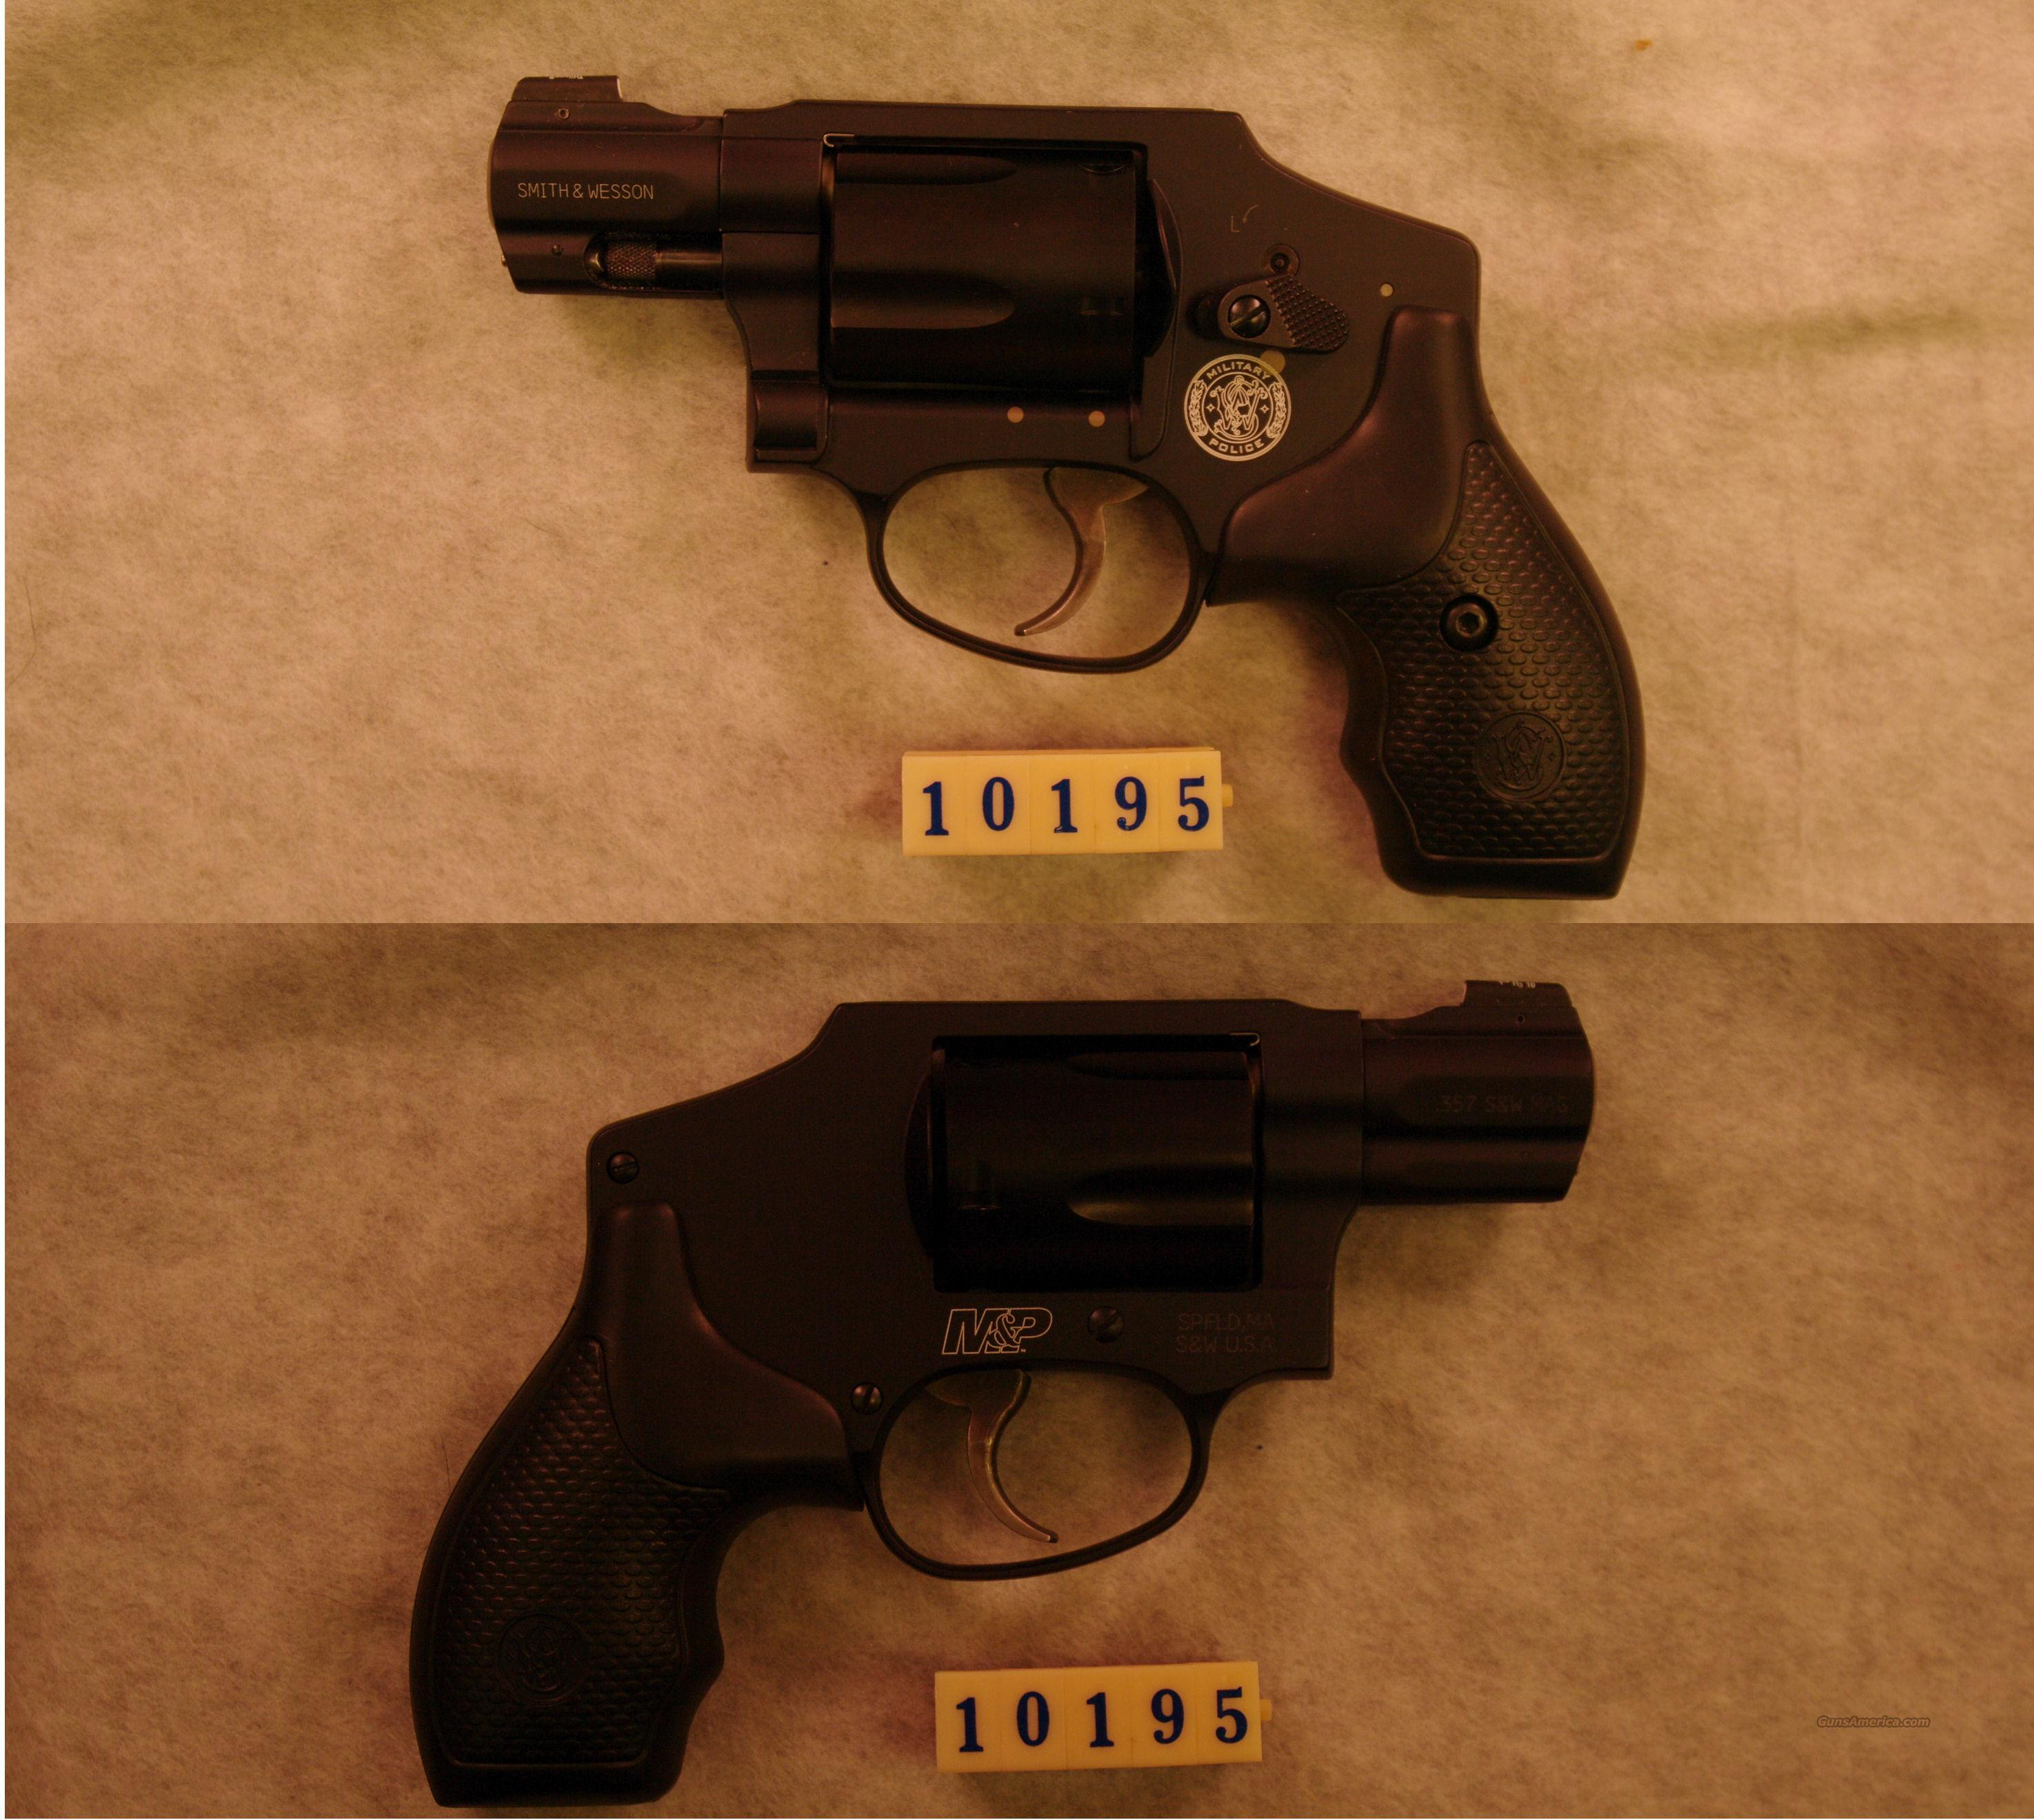 Smith & Wesson M&P 340 .357 Magnum  Guns > Pistols > Smith & Wesson Revolvers > Pocket Pistols